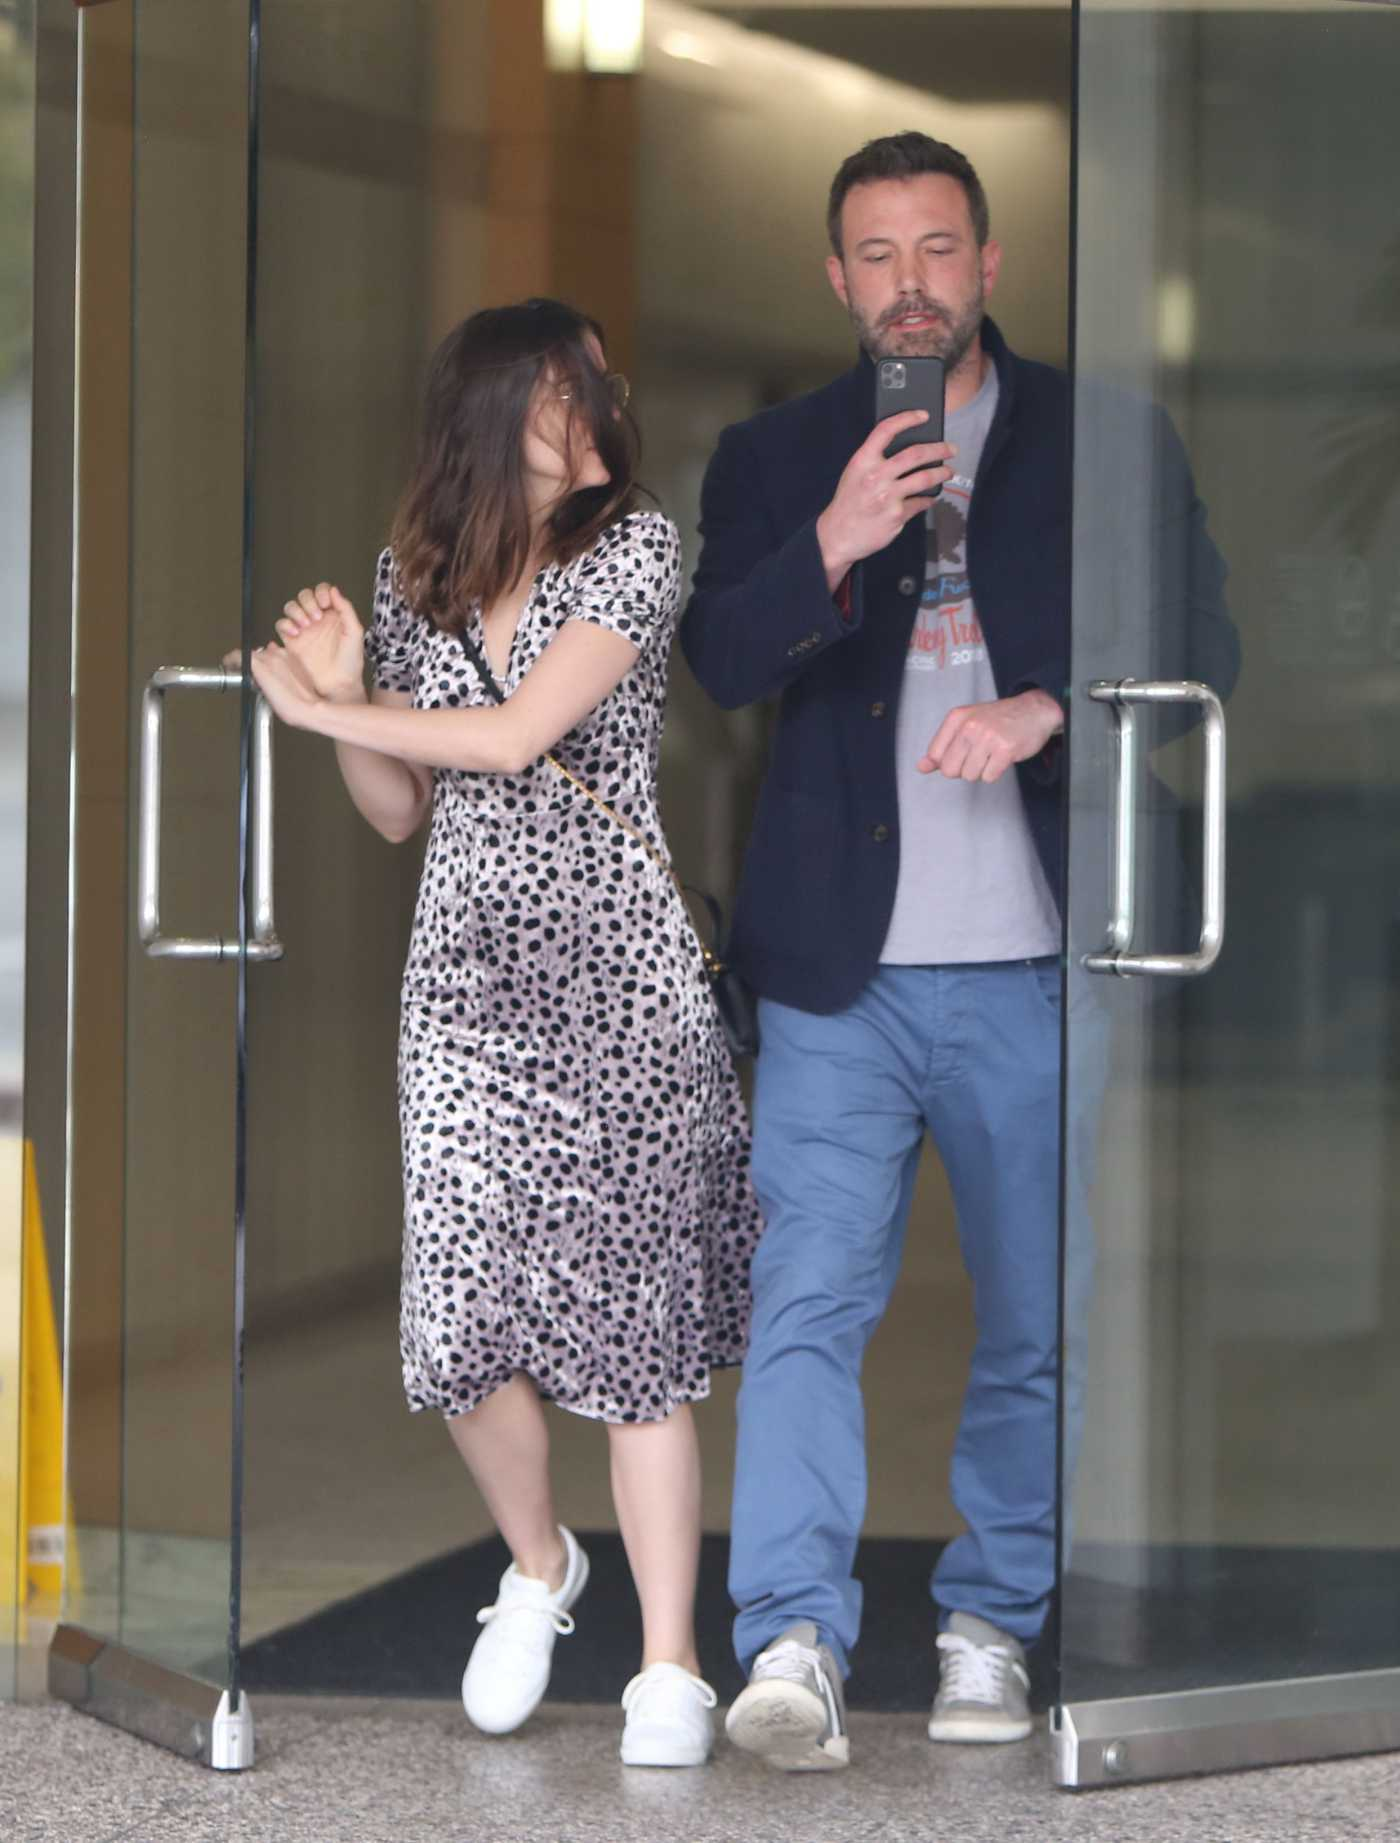 Ana de Armas Leaves an Office Building Out with Ben Affleck in Los Angeles 03/20/2020